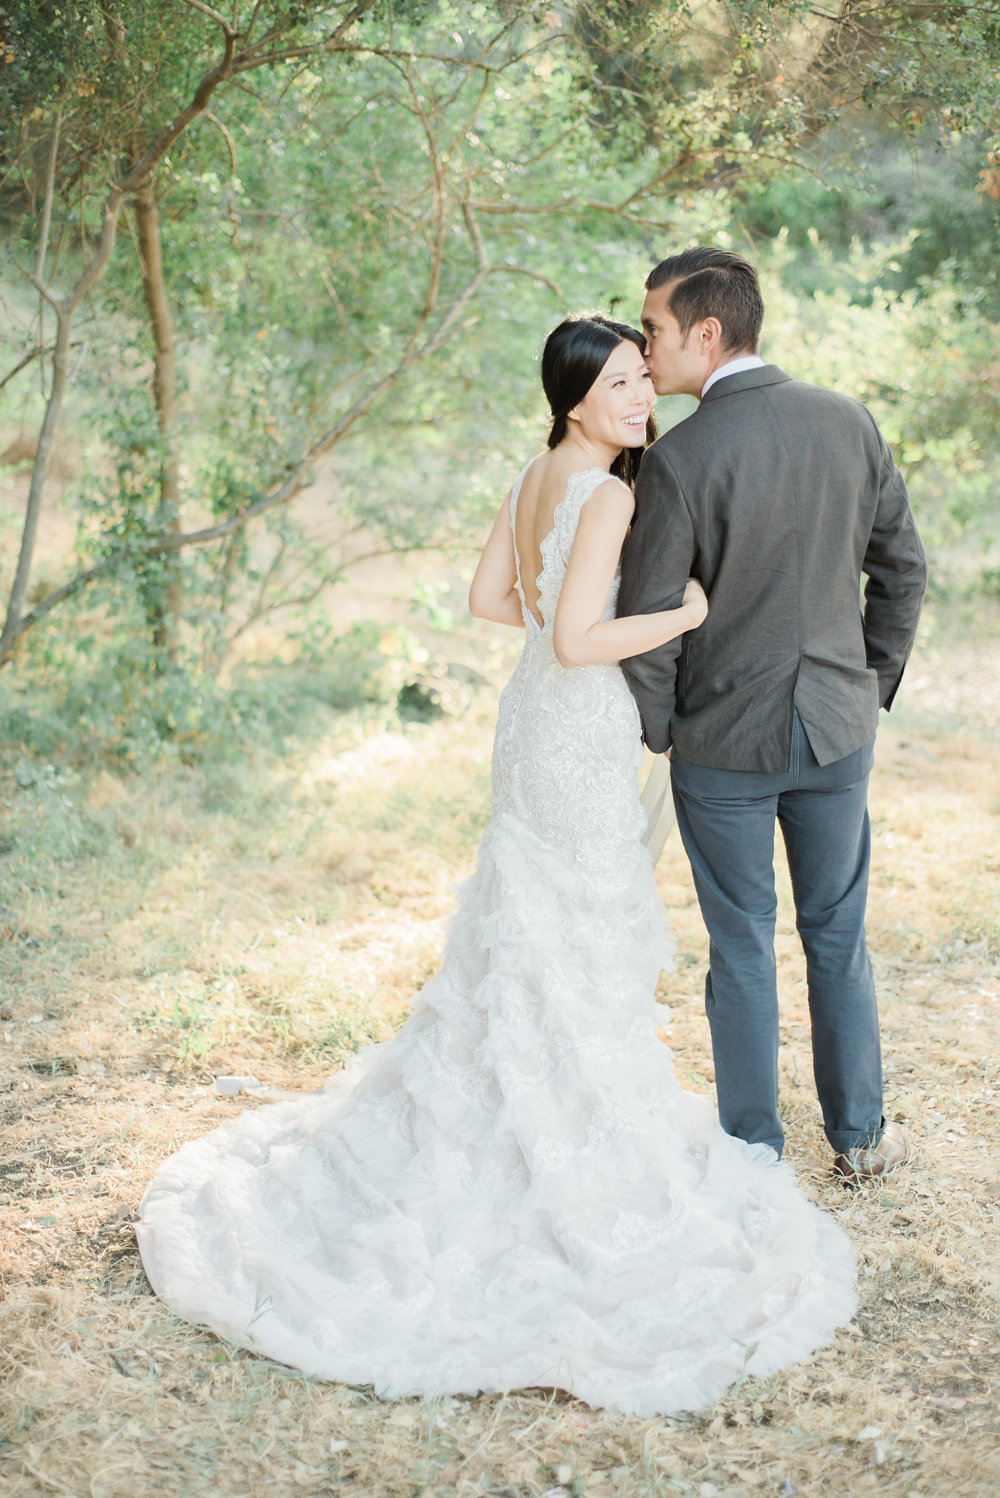 bride and groom - photo by Anya Kernes Photography http://ruffledblog.com/organic-wedding-inspiration-with-shades-of-blue